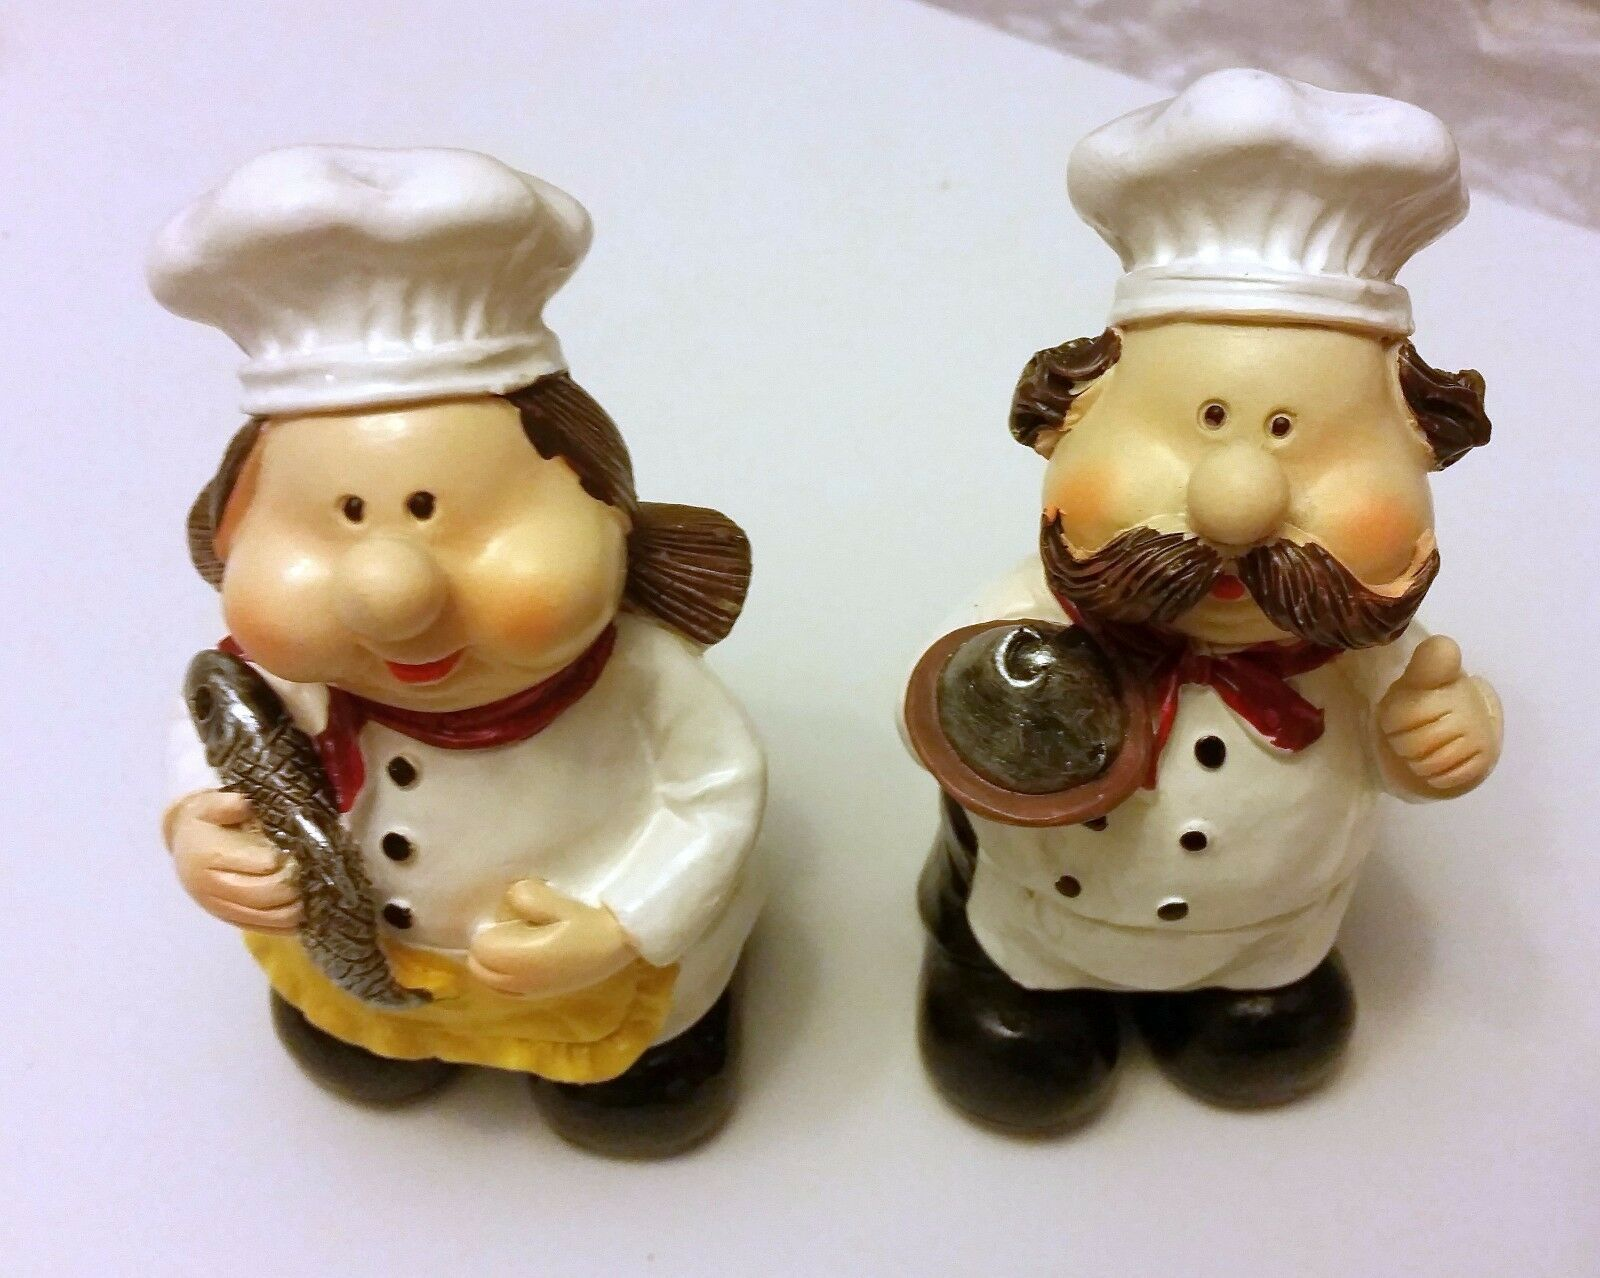 Set of 2 NEW FAT CHEF STANDING FIGURES, Chef with tray & chef with fish